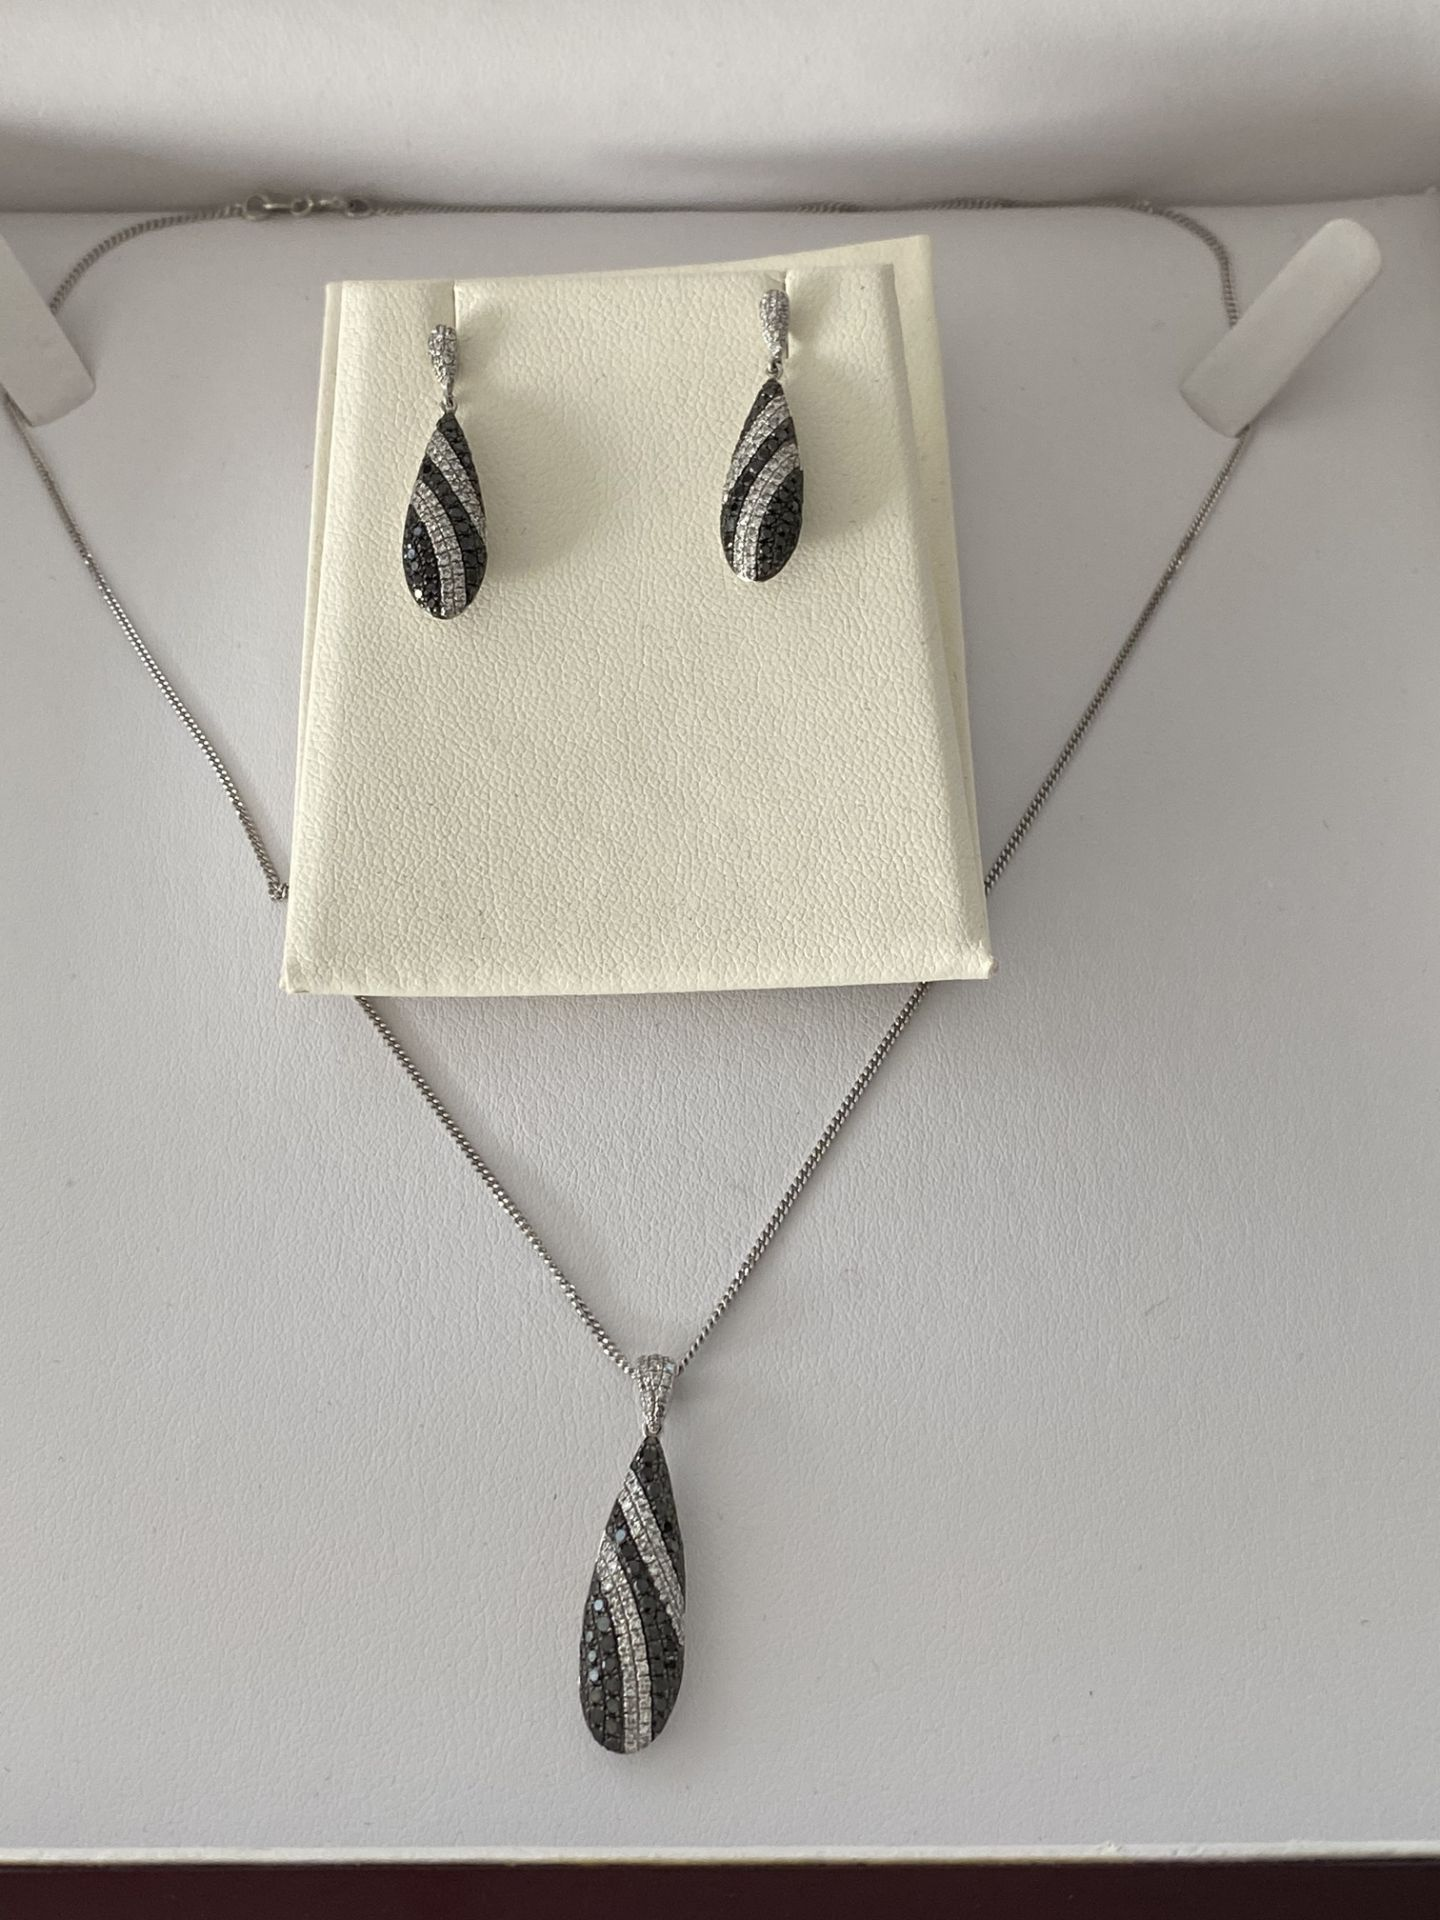 9ct GOLD 1.50ct BLACK & WHITE DIAMOND DROP EARRINGS WITH MATCHING PENDANT